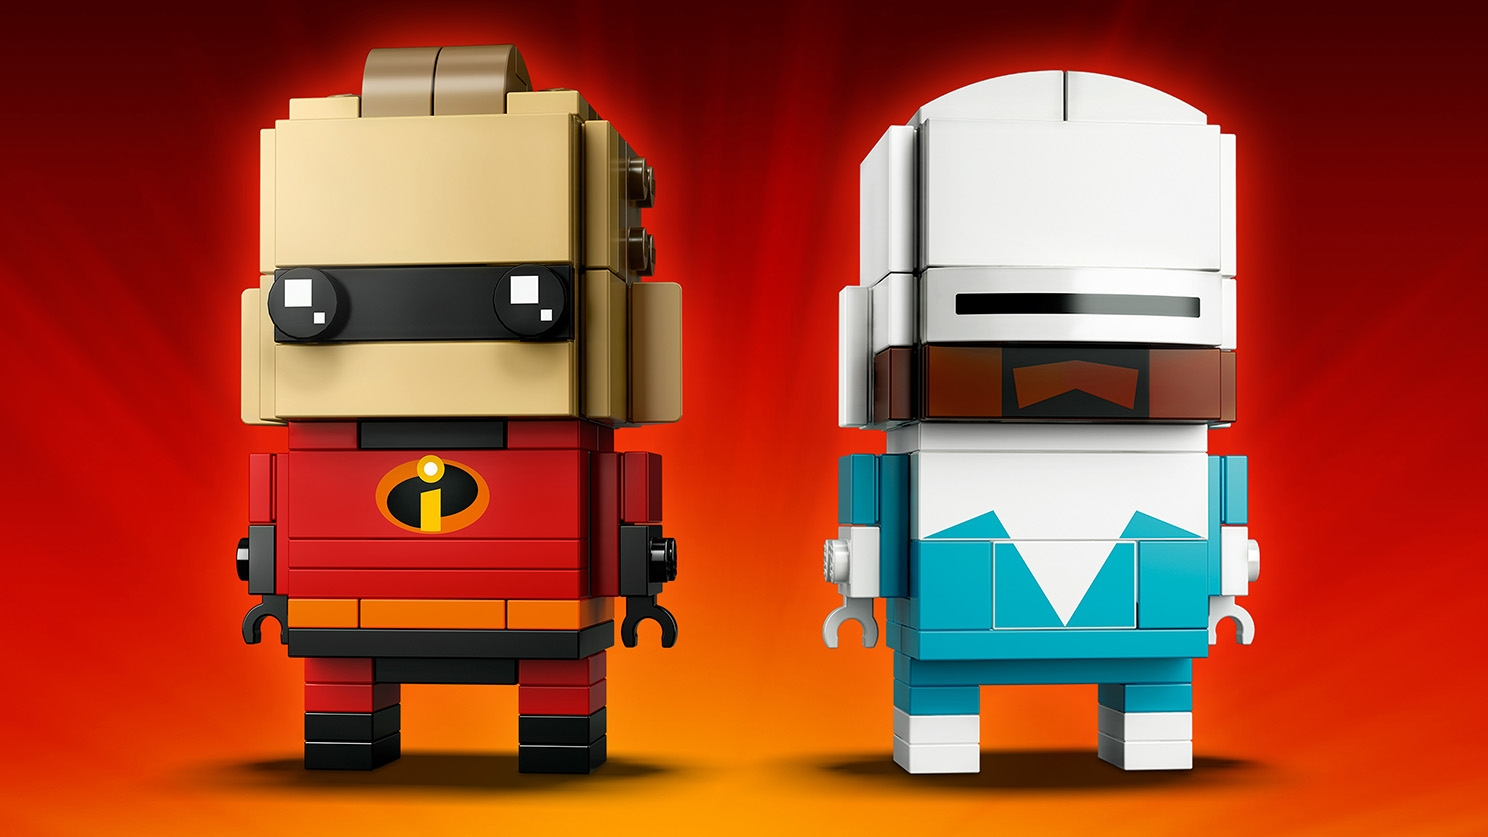 LEGO Brickheadz - 41613 Mr. Incredible and Frozone - Build two LEGO Brickheadz figures of Mr. Incredible in his red suit and Frozone in a white and icy blue suit.